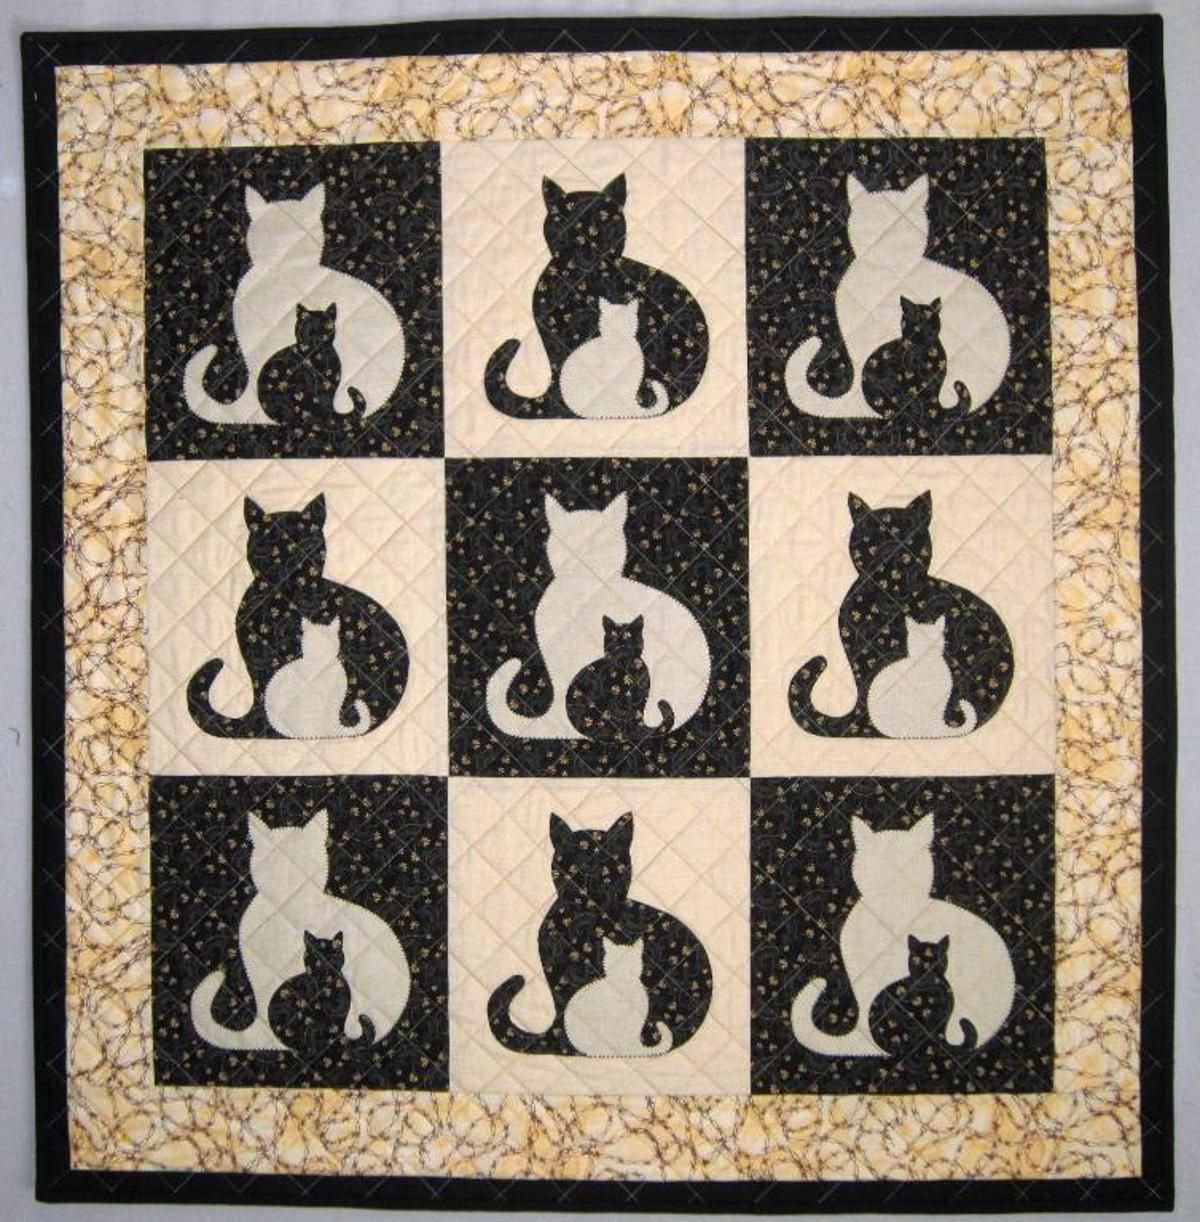 SIDEKICK Cat Applique Quilt, 5 sizes Cat quilt patterns